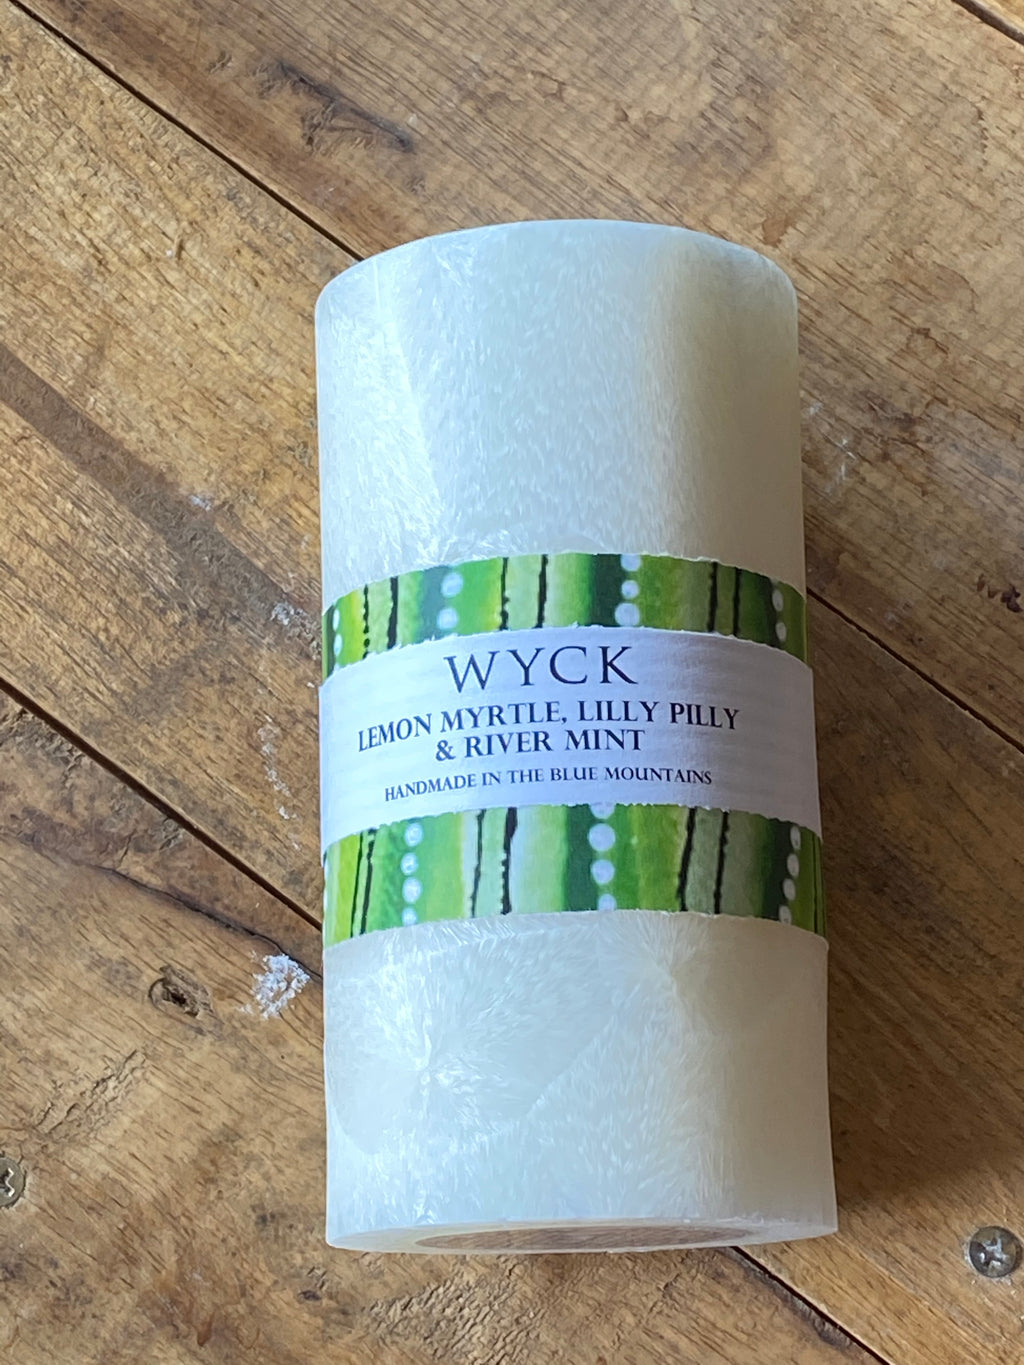 WYCK candle made in the Blue Mountains